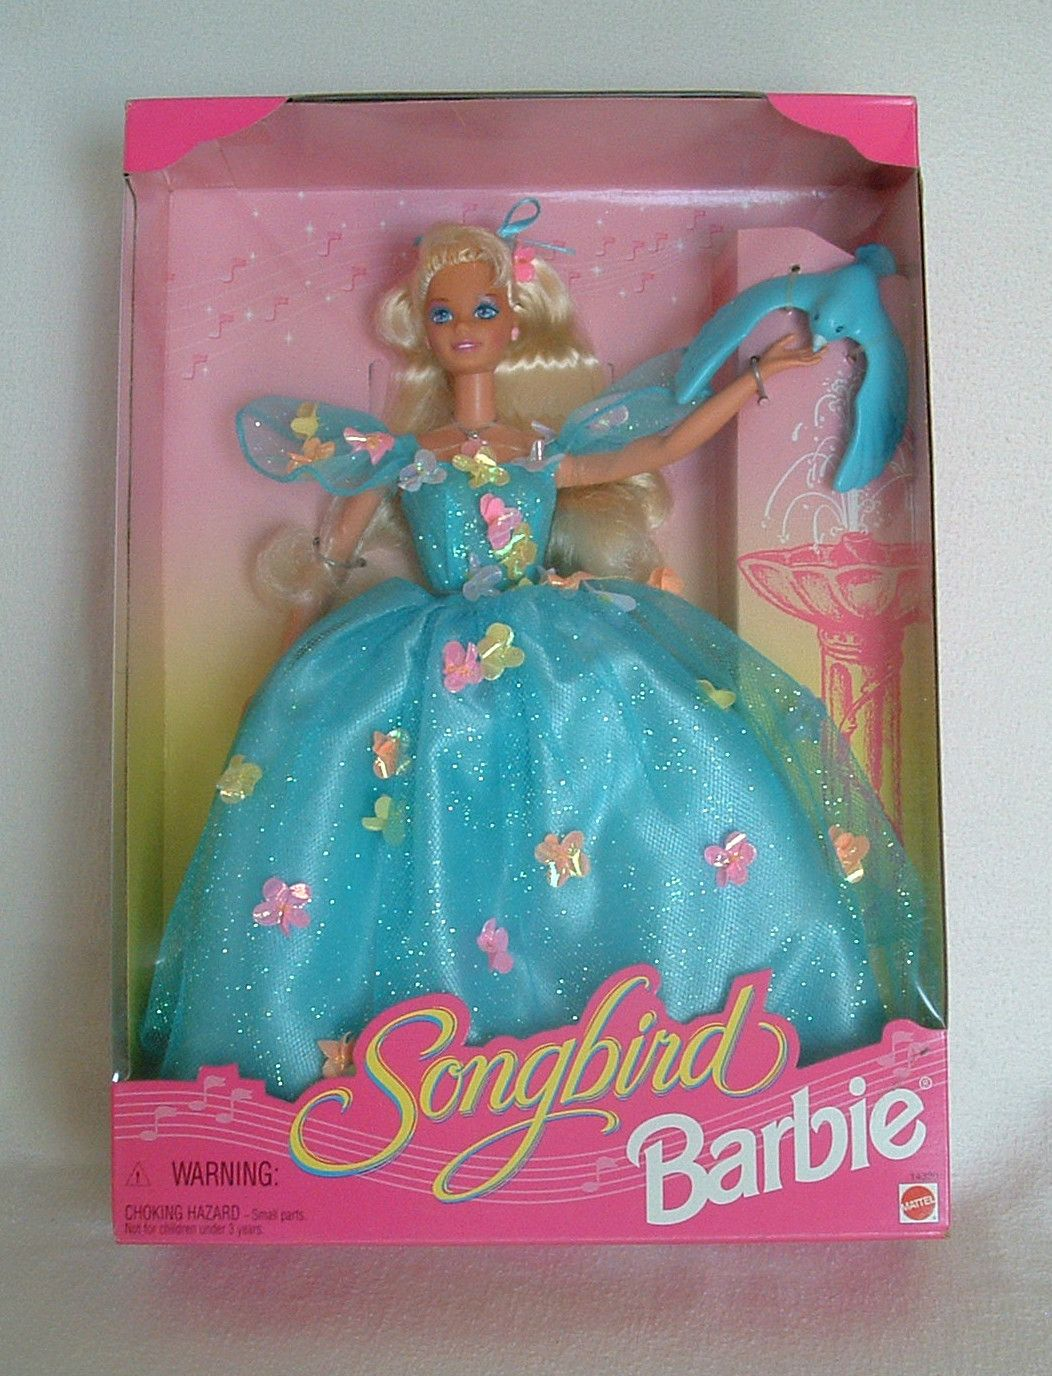 Songbird Barbie Doll 1995 I Had One Of These My Generation